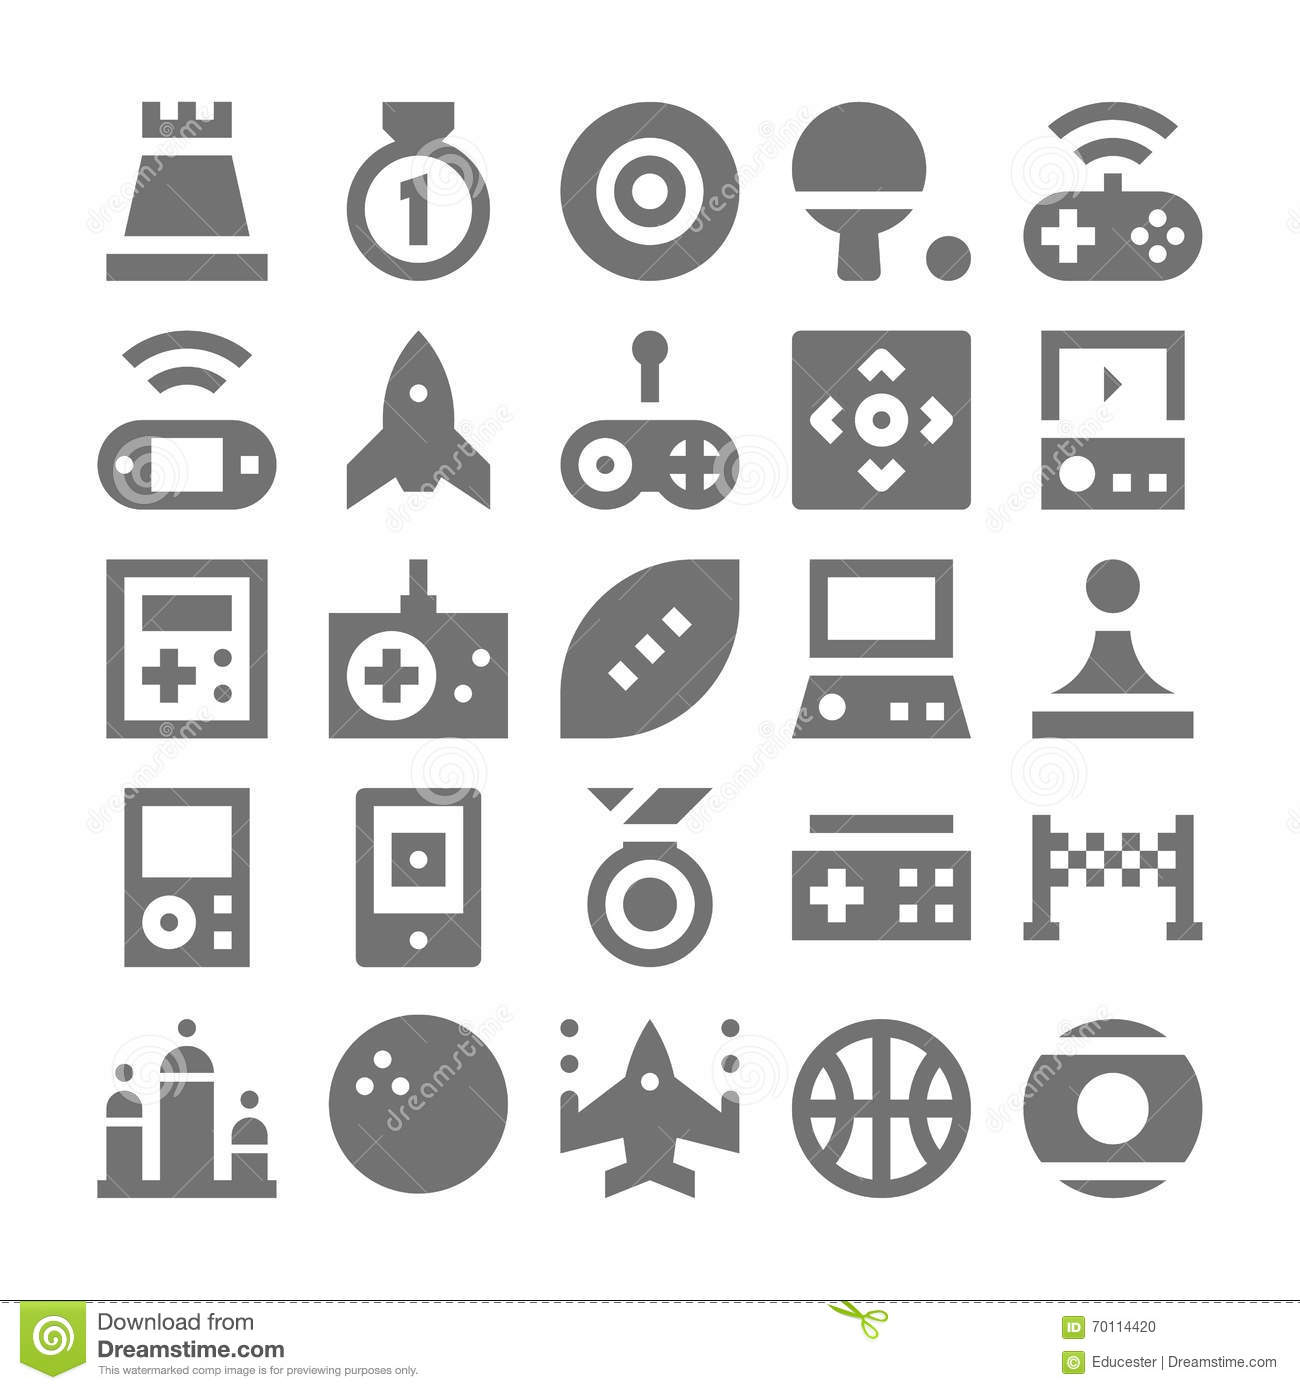 Popular Gaming Controller Royalty Free Stock Photography